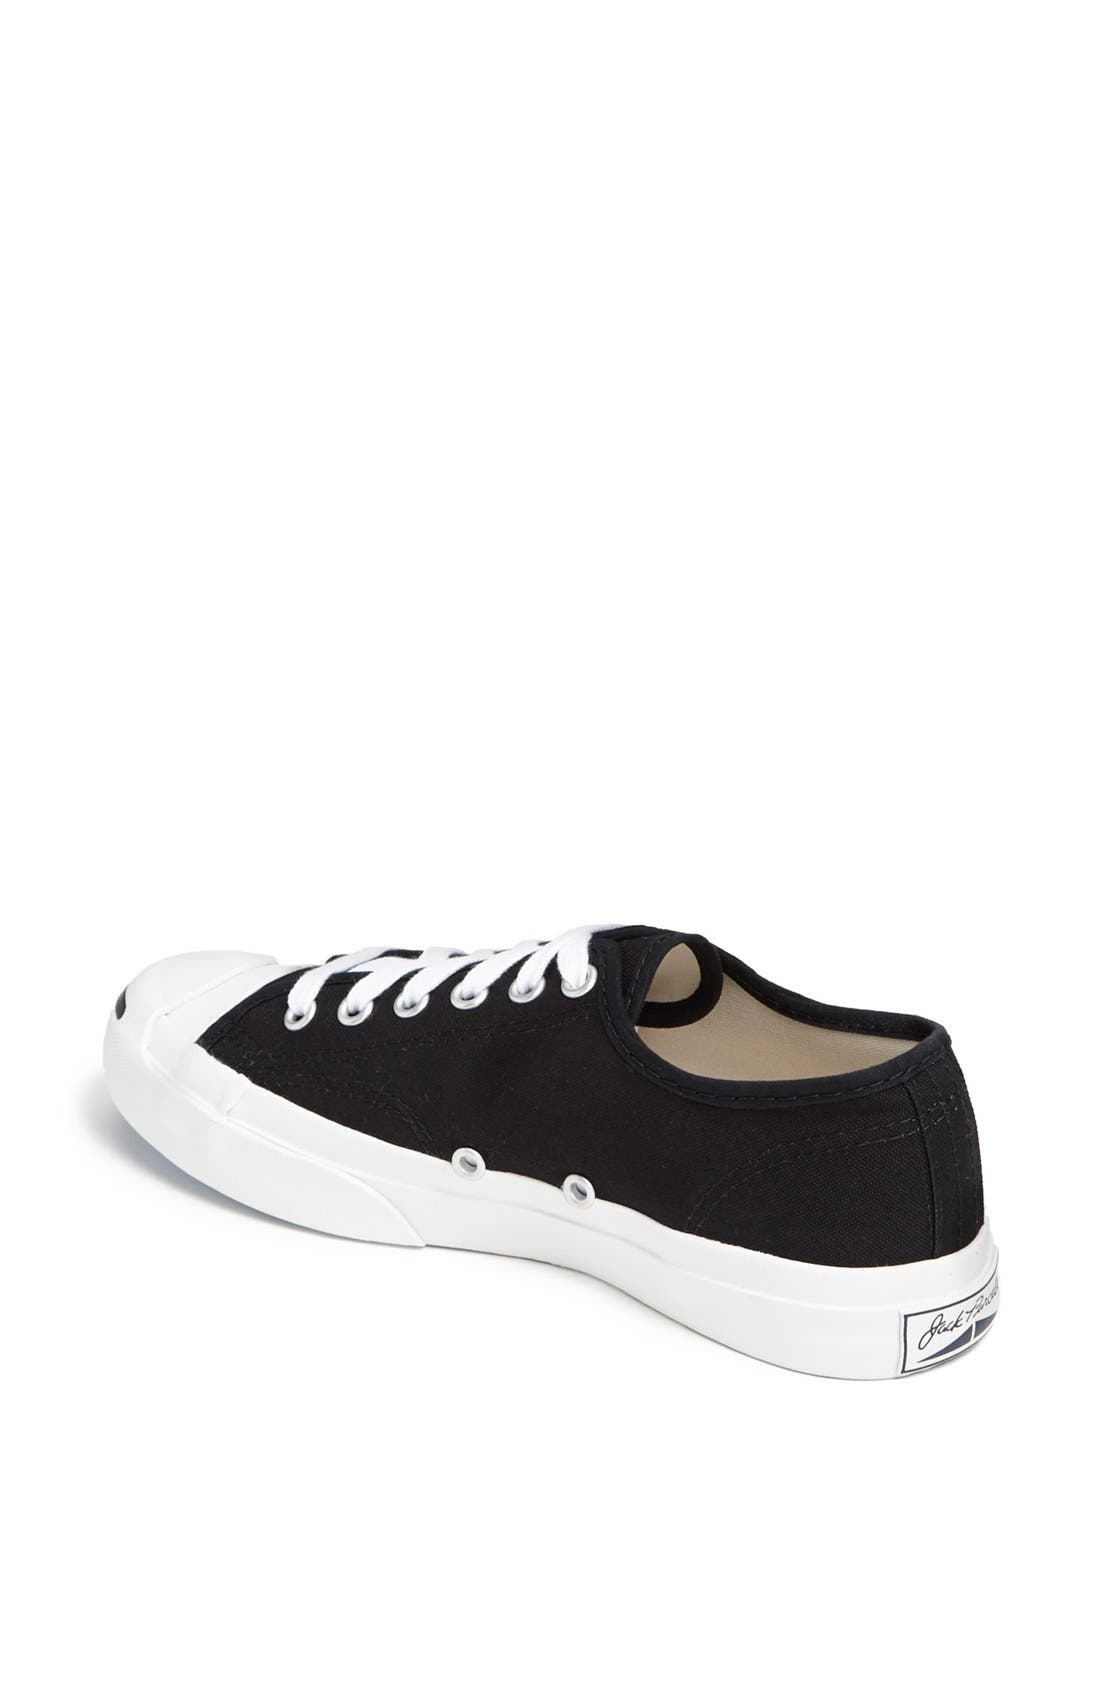 'Jack Purcell' Sneaker,                             Alternate thumbnail 5, color,